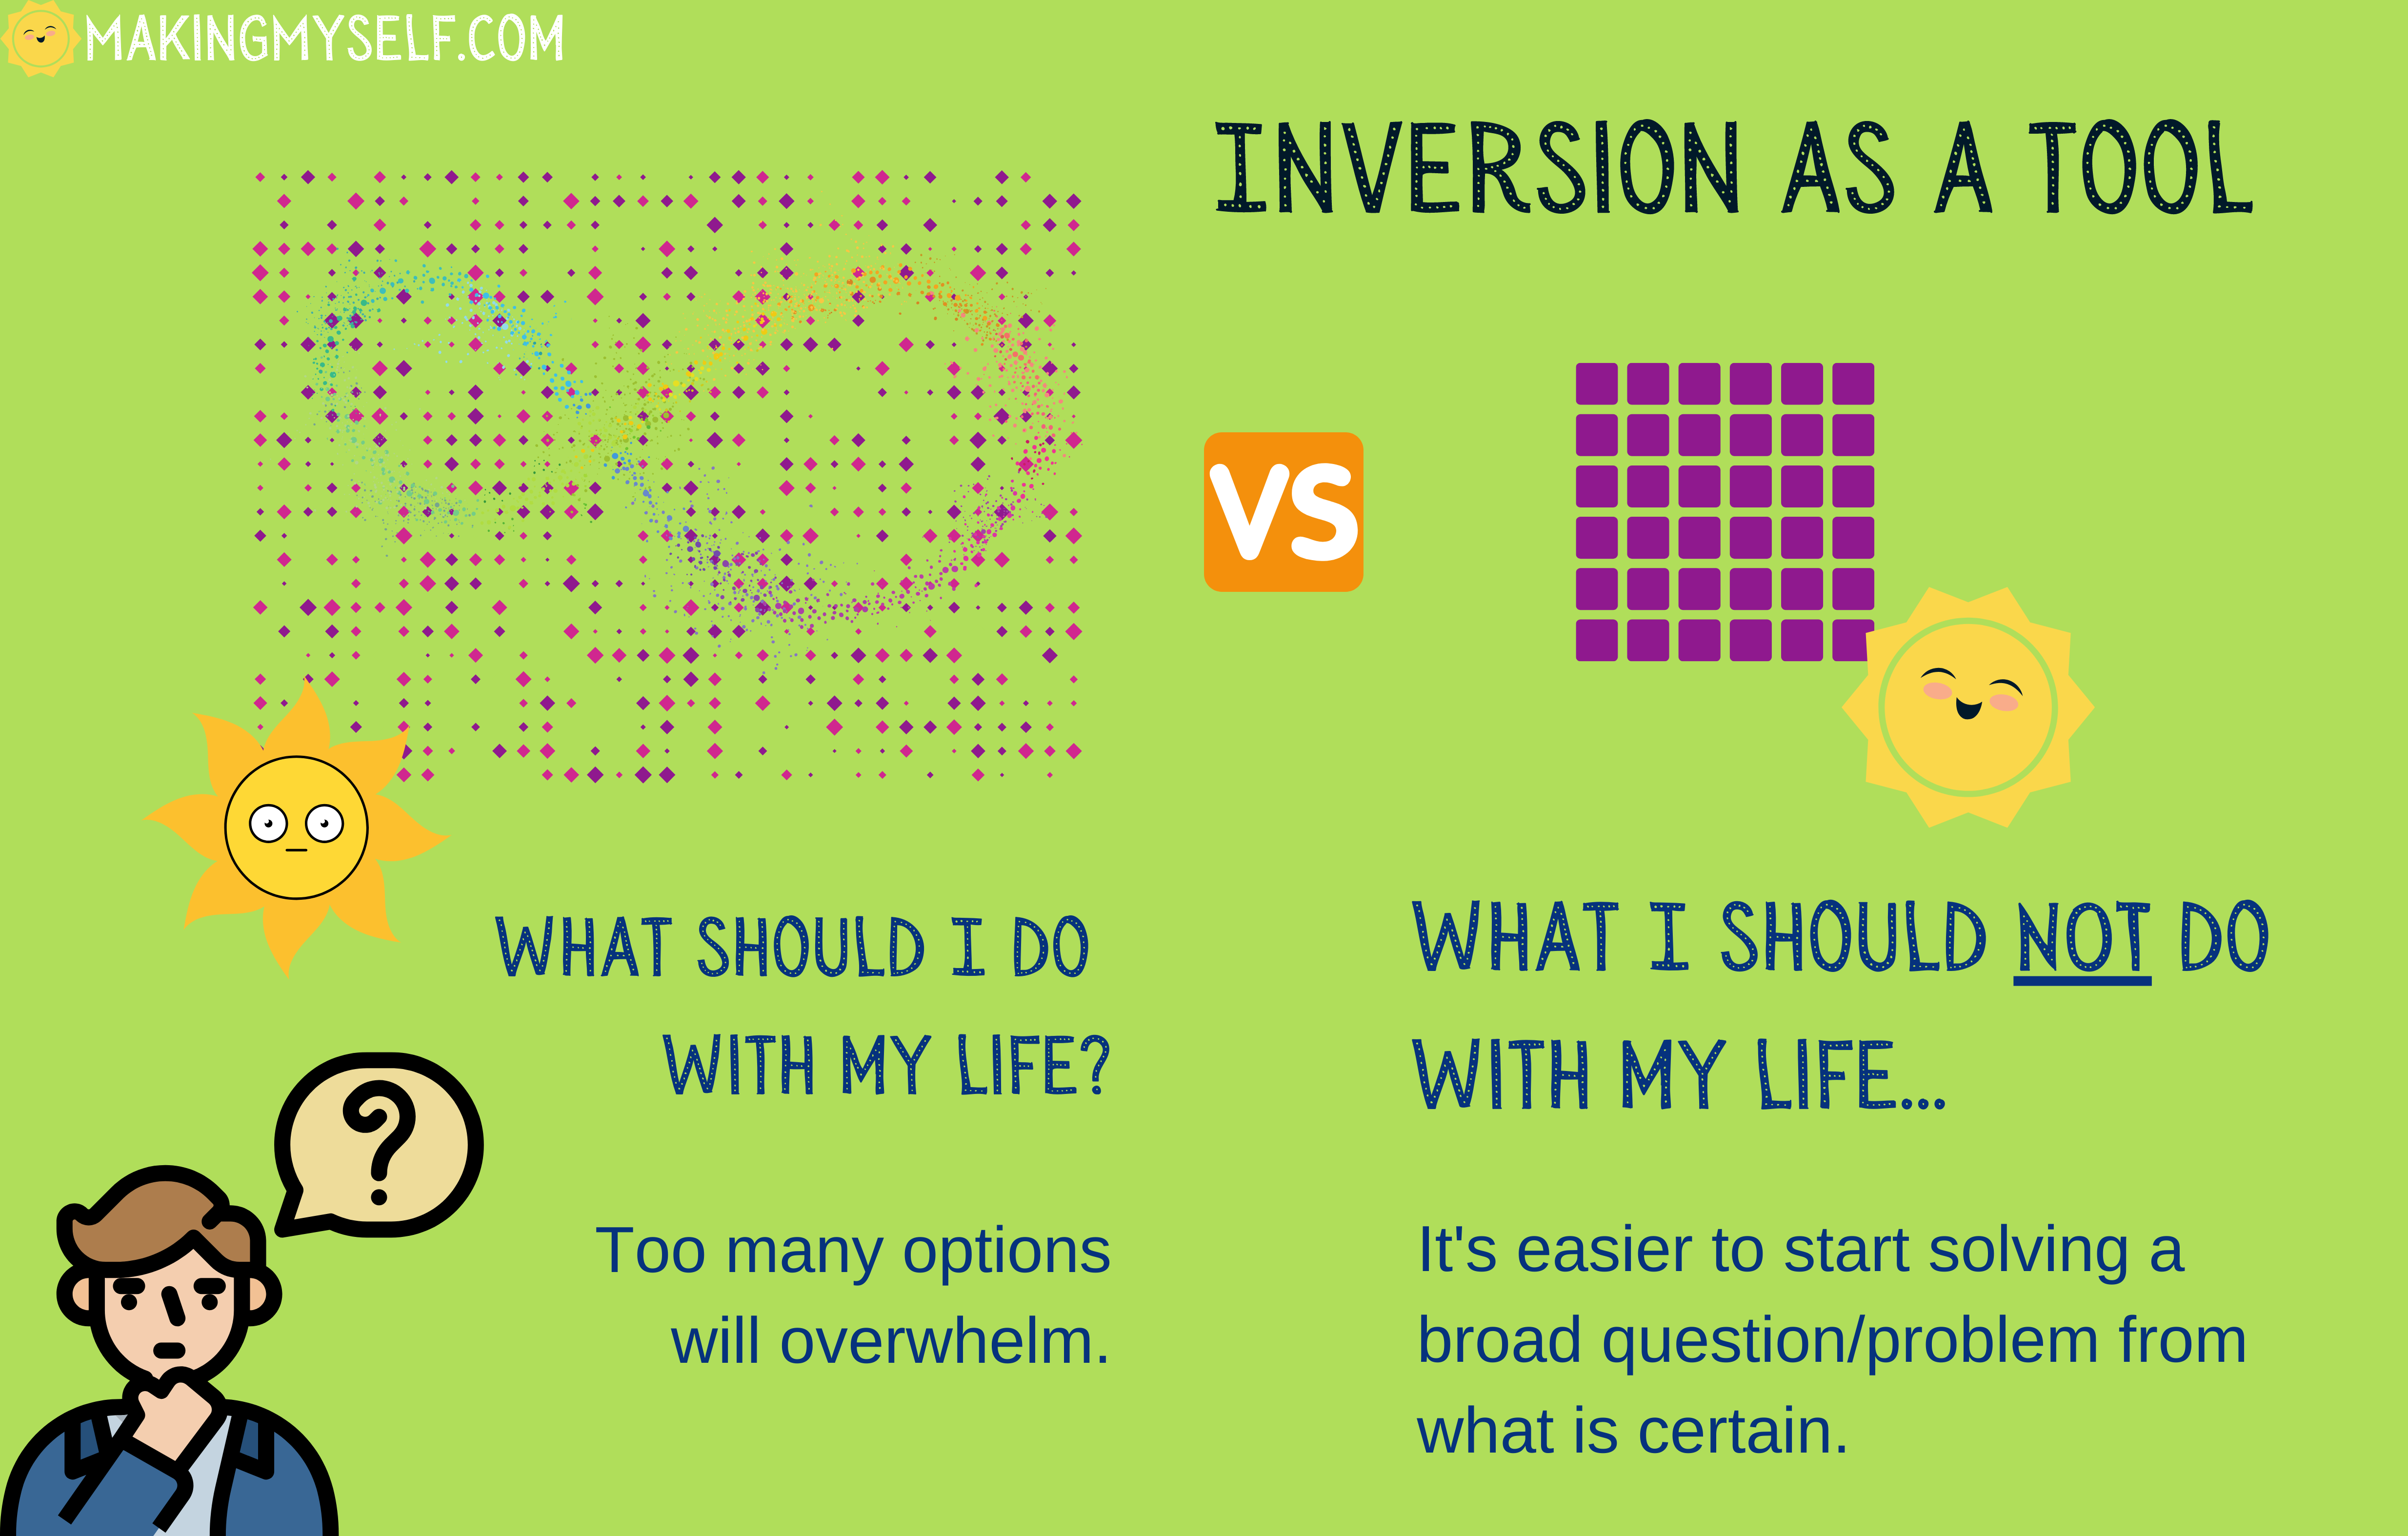 Inversion as a tool - What should I do with my life?